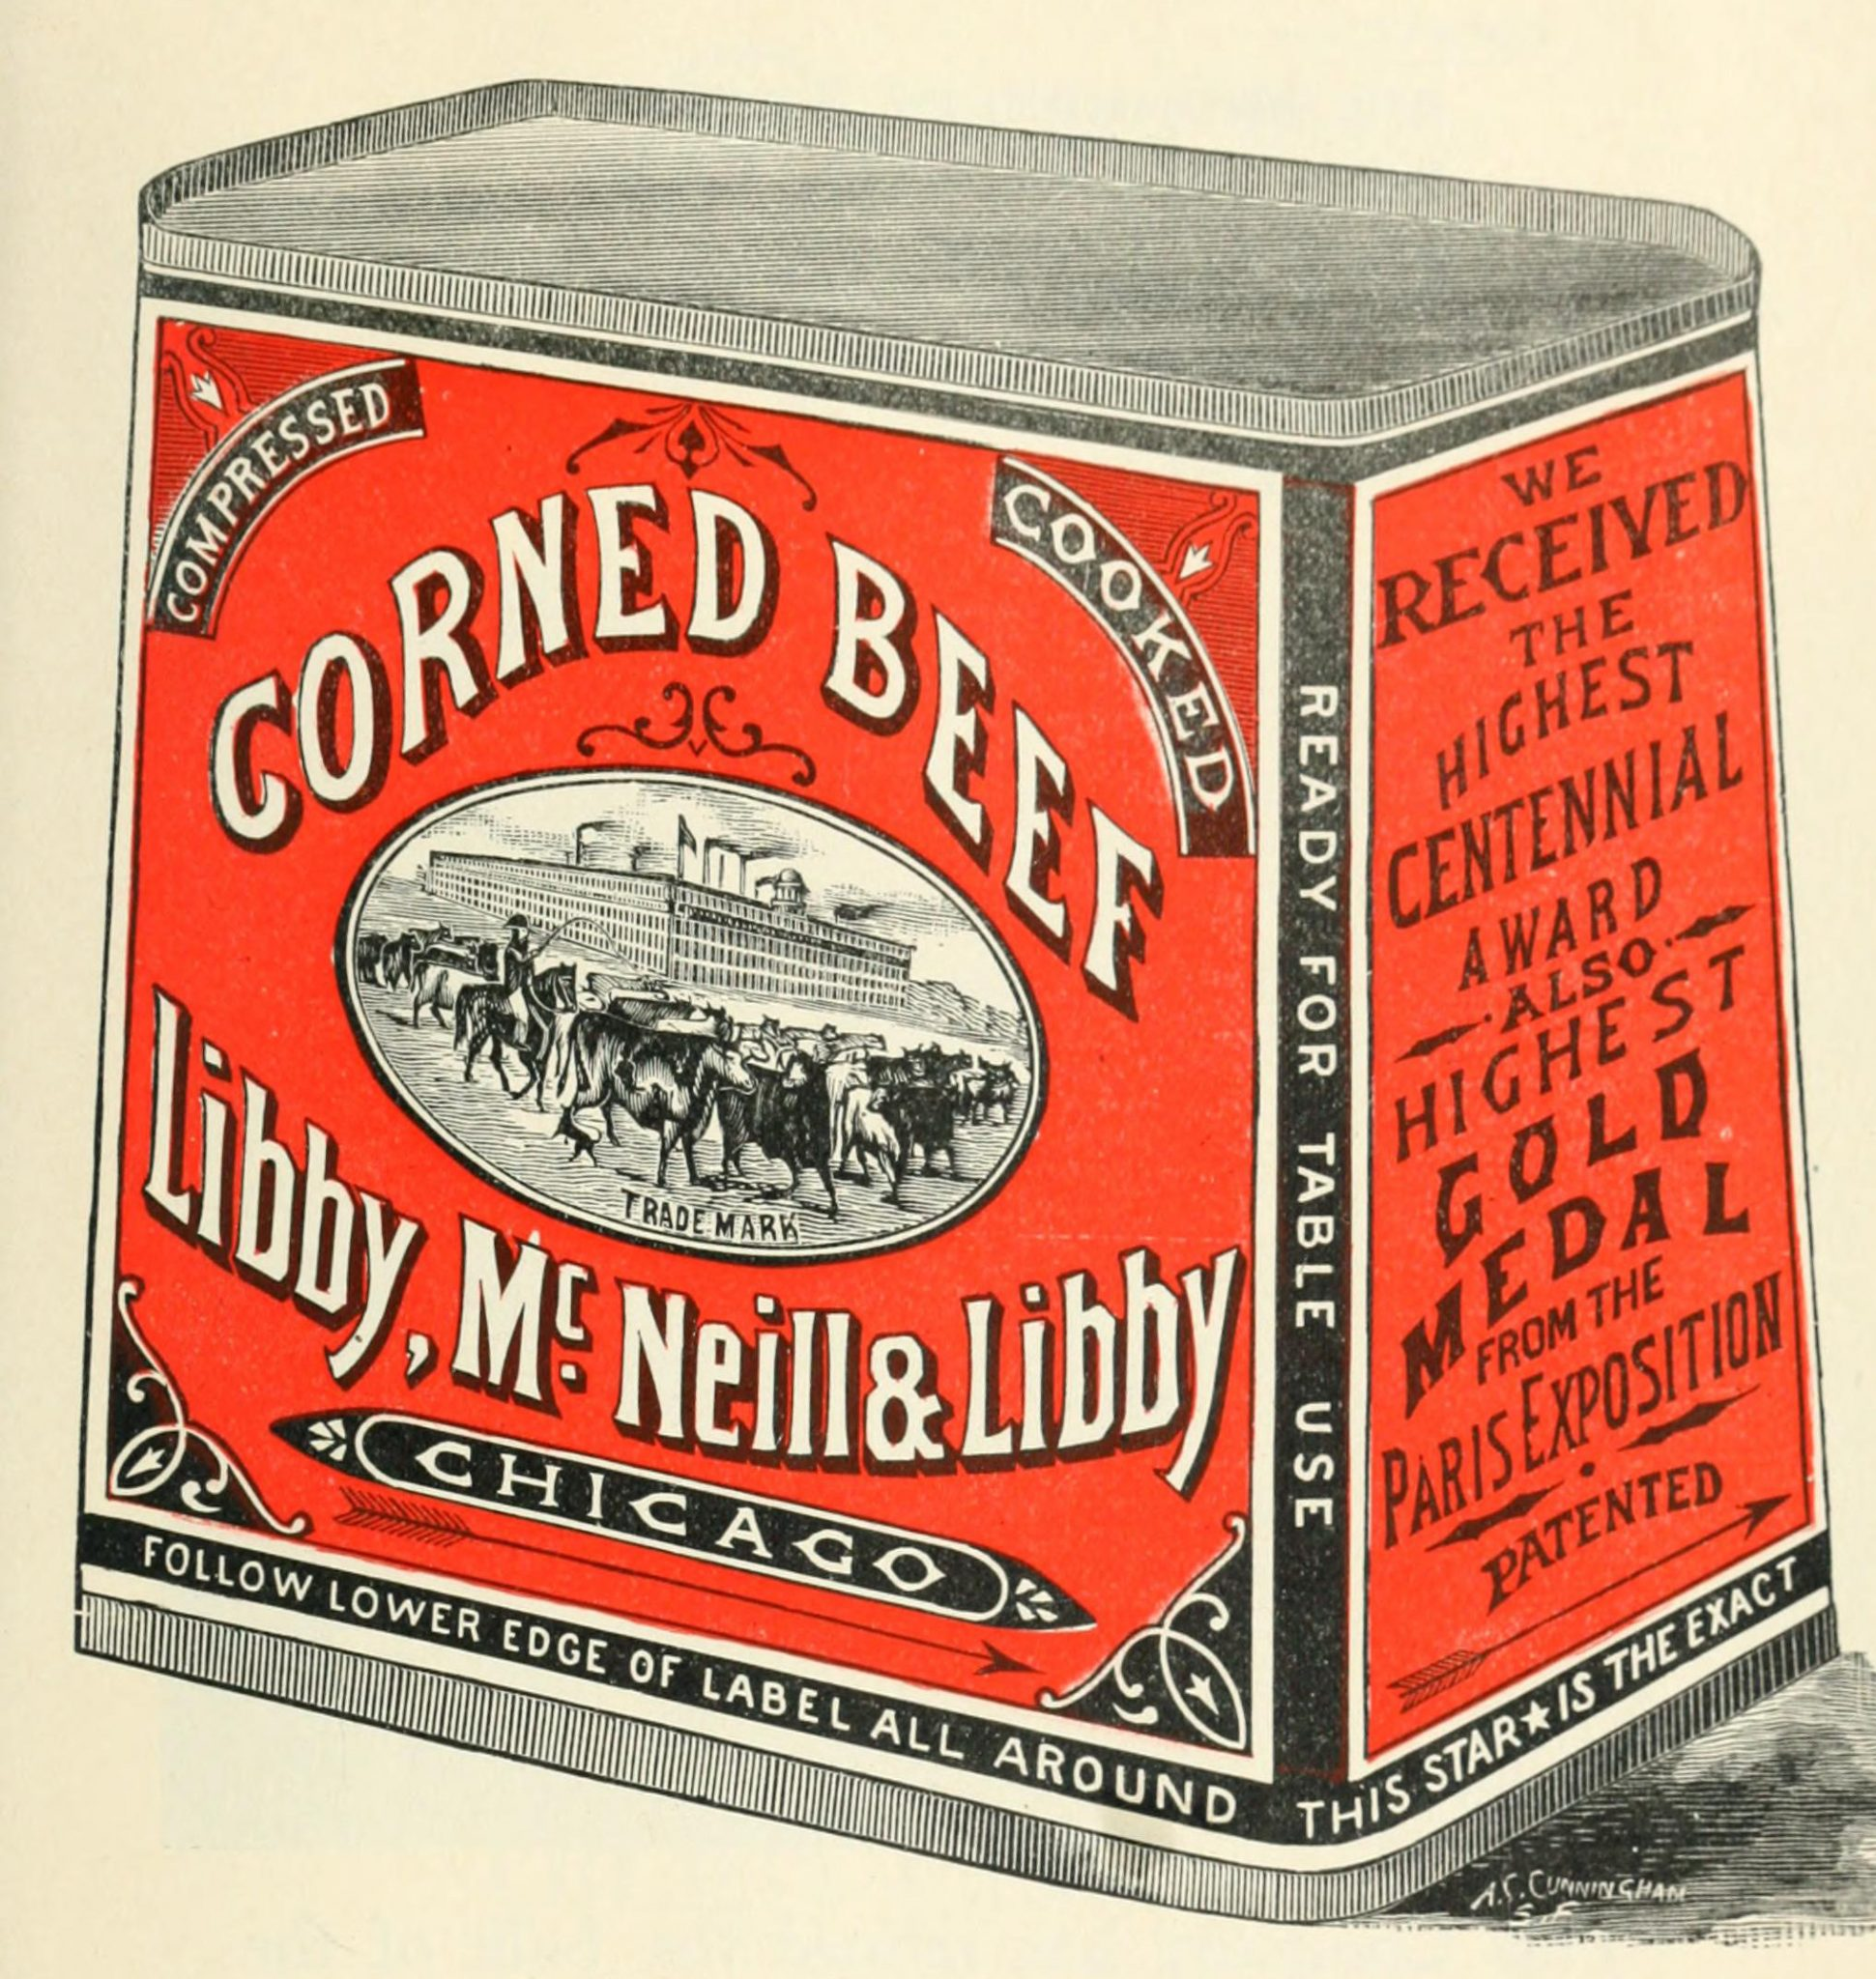 This is a free vintage color illustration of a can of corned beef